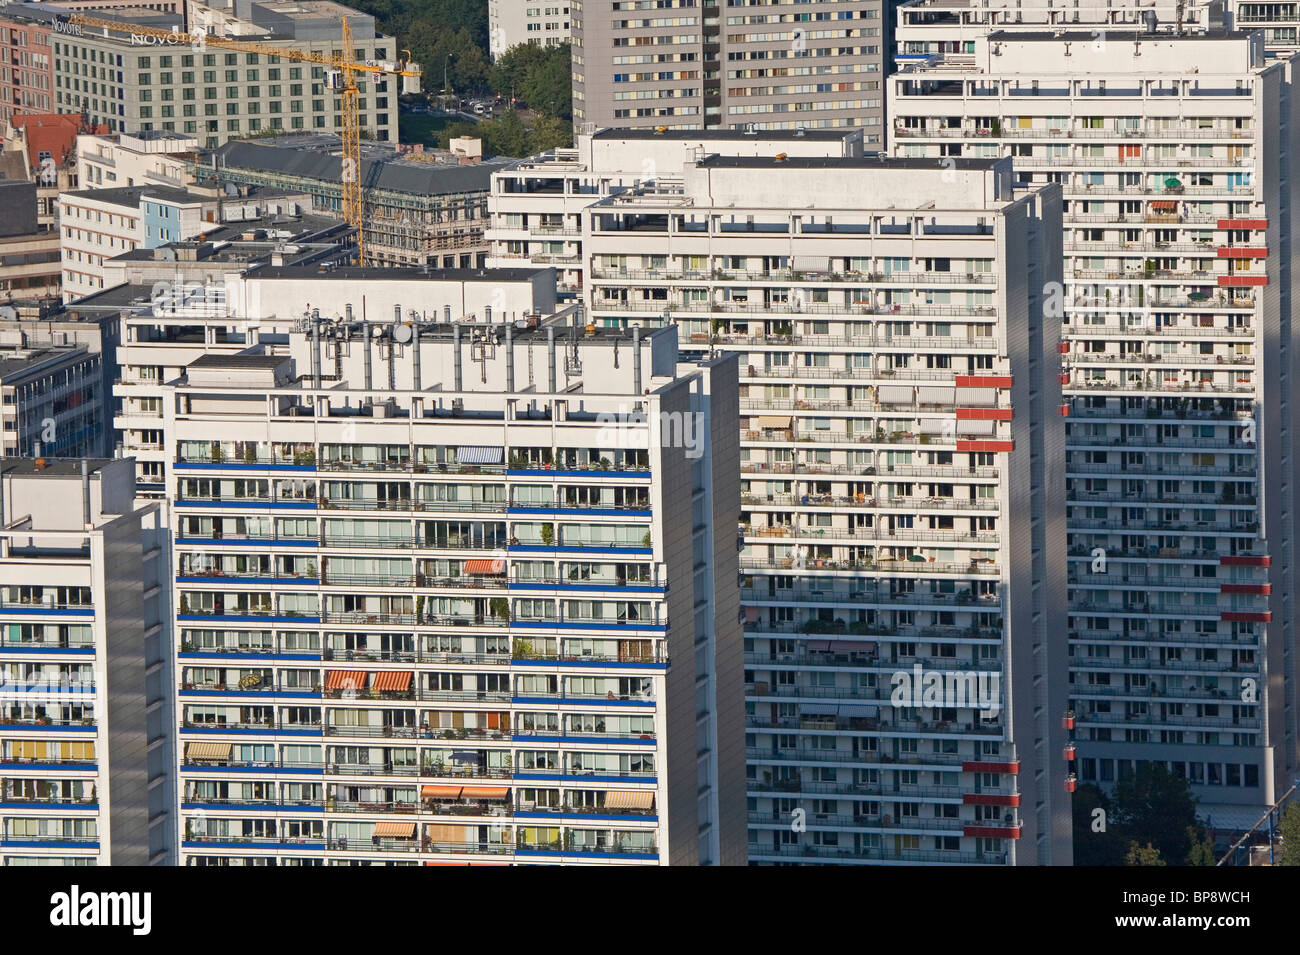 plattenbau former gdr prefabricated buildings leipziger strasse stock photo 30928369 alamy